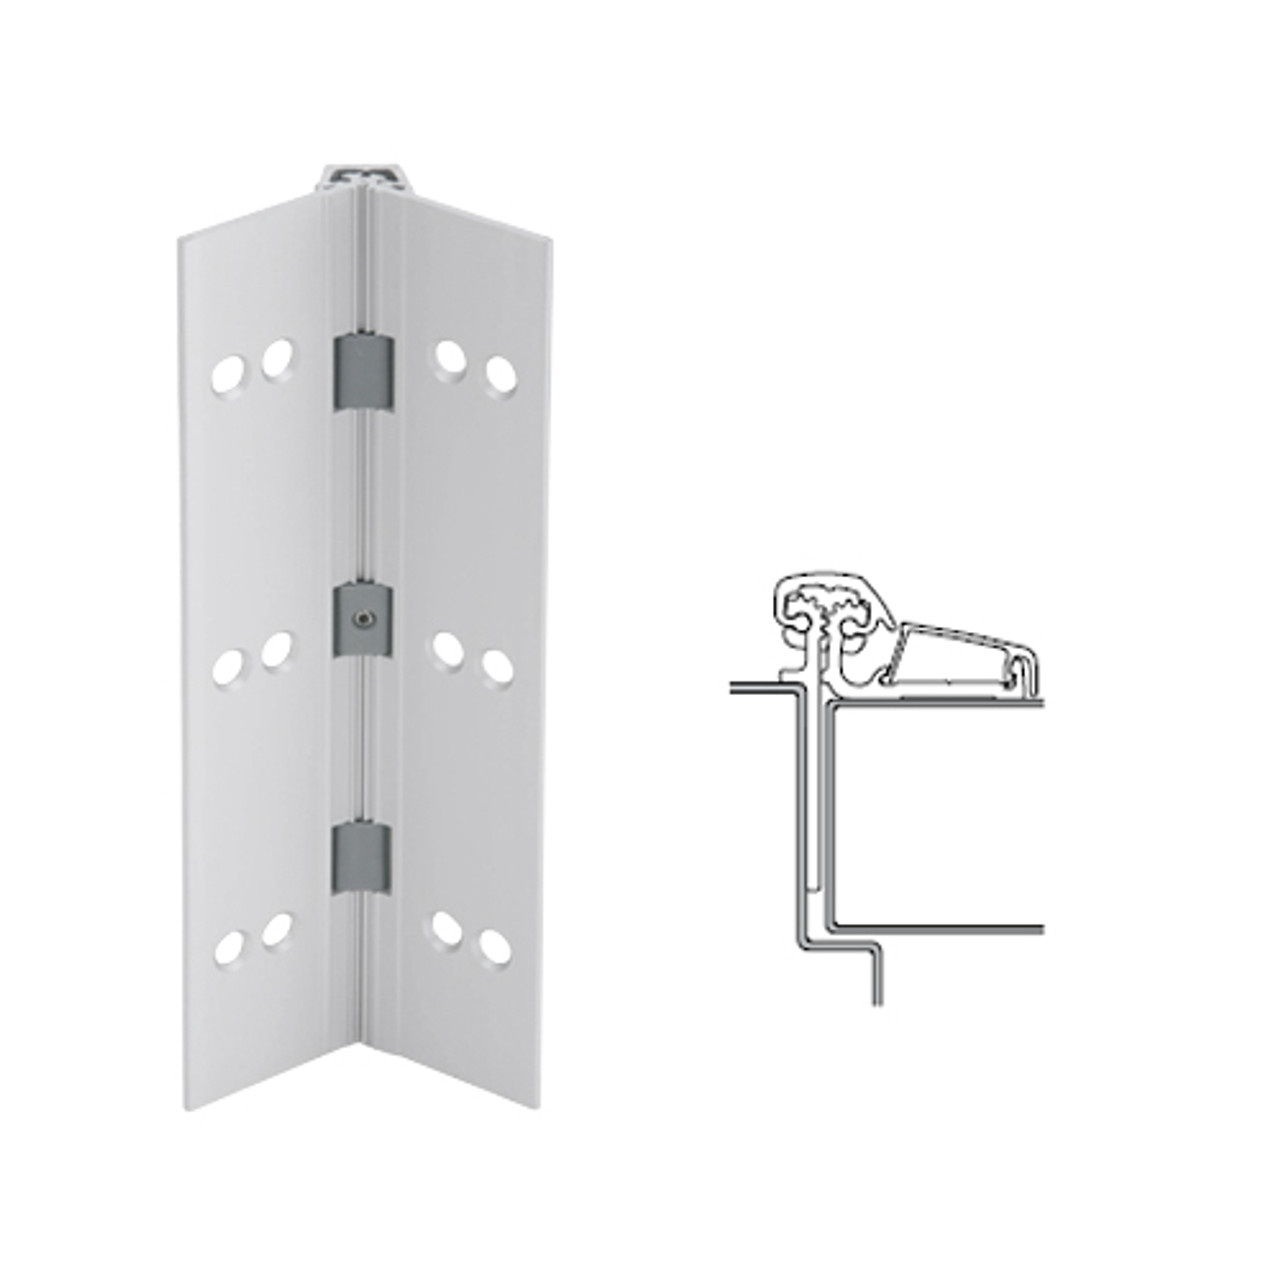 053XY-US28-83-SECWDHM IVES Adjustable Half Surface Continuous Geared Hinges with Security Screws - Hex Pin Drive in Satin Aluminum